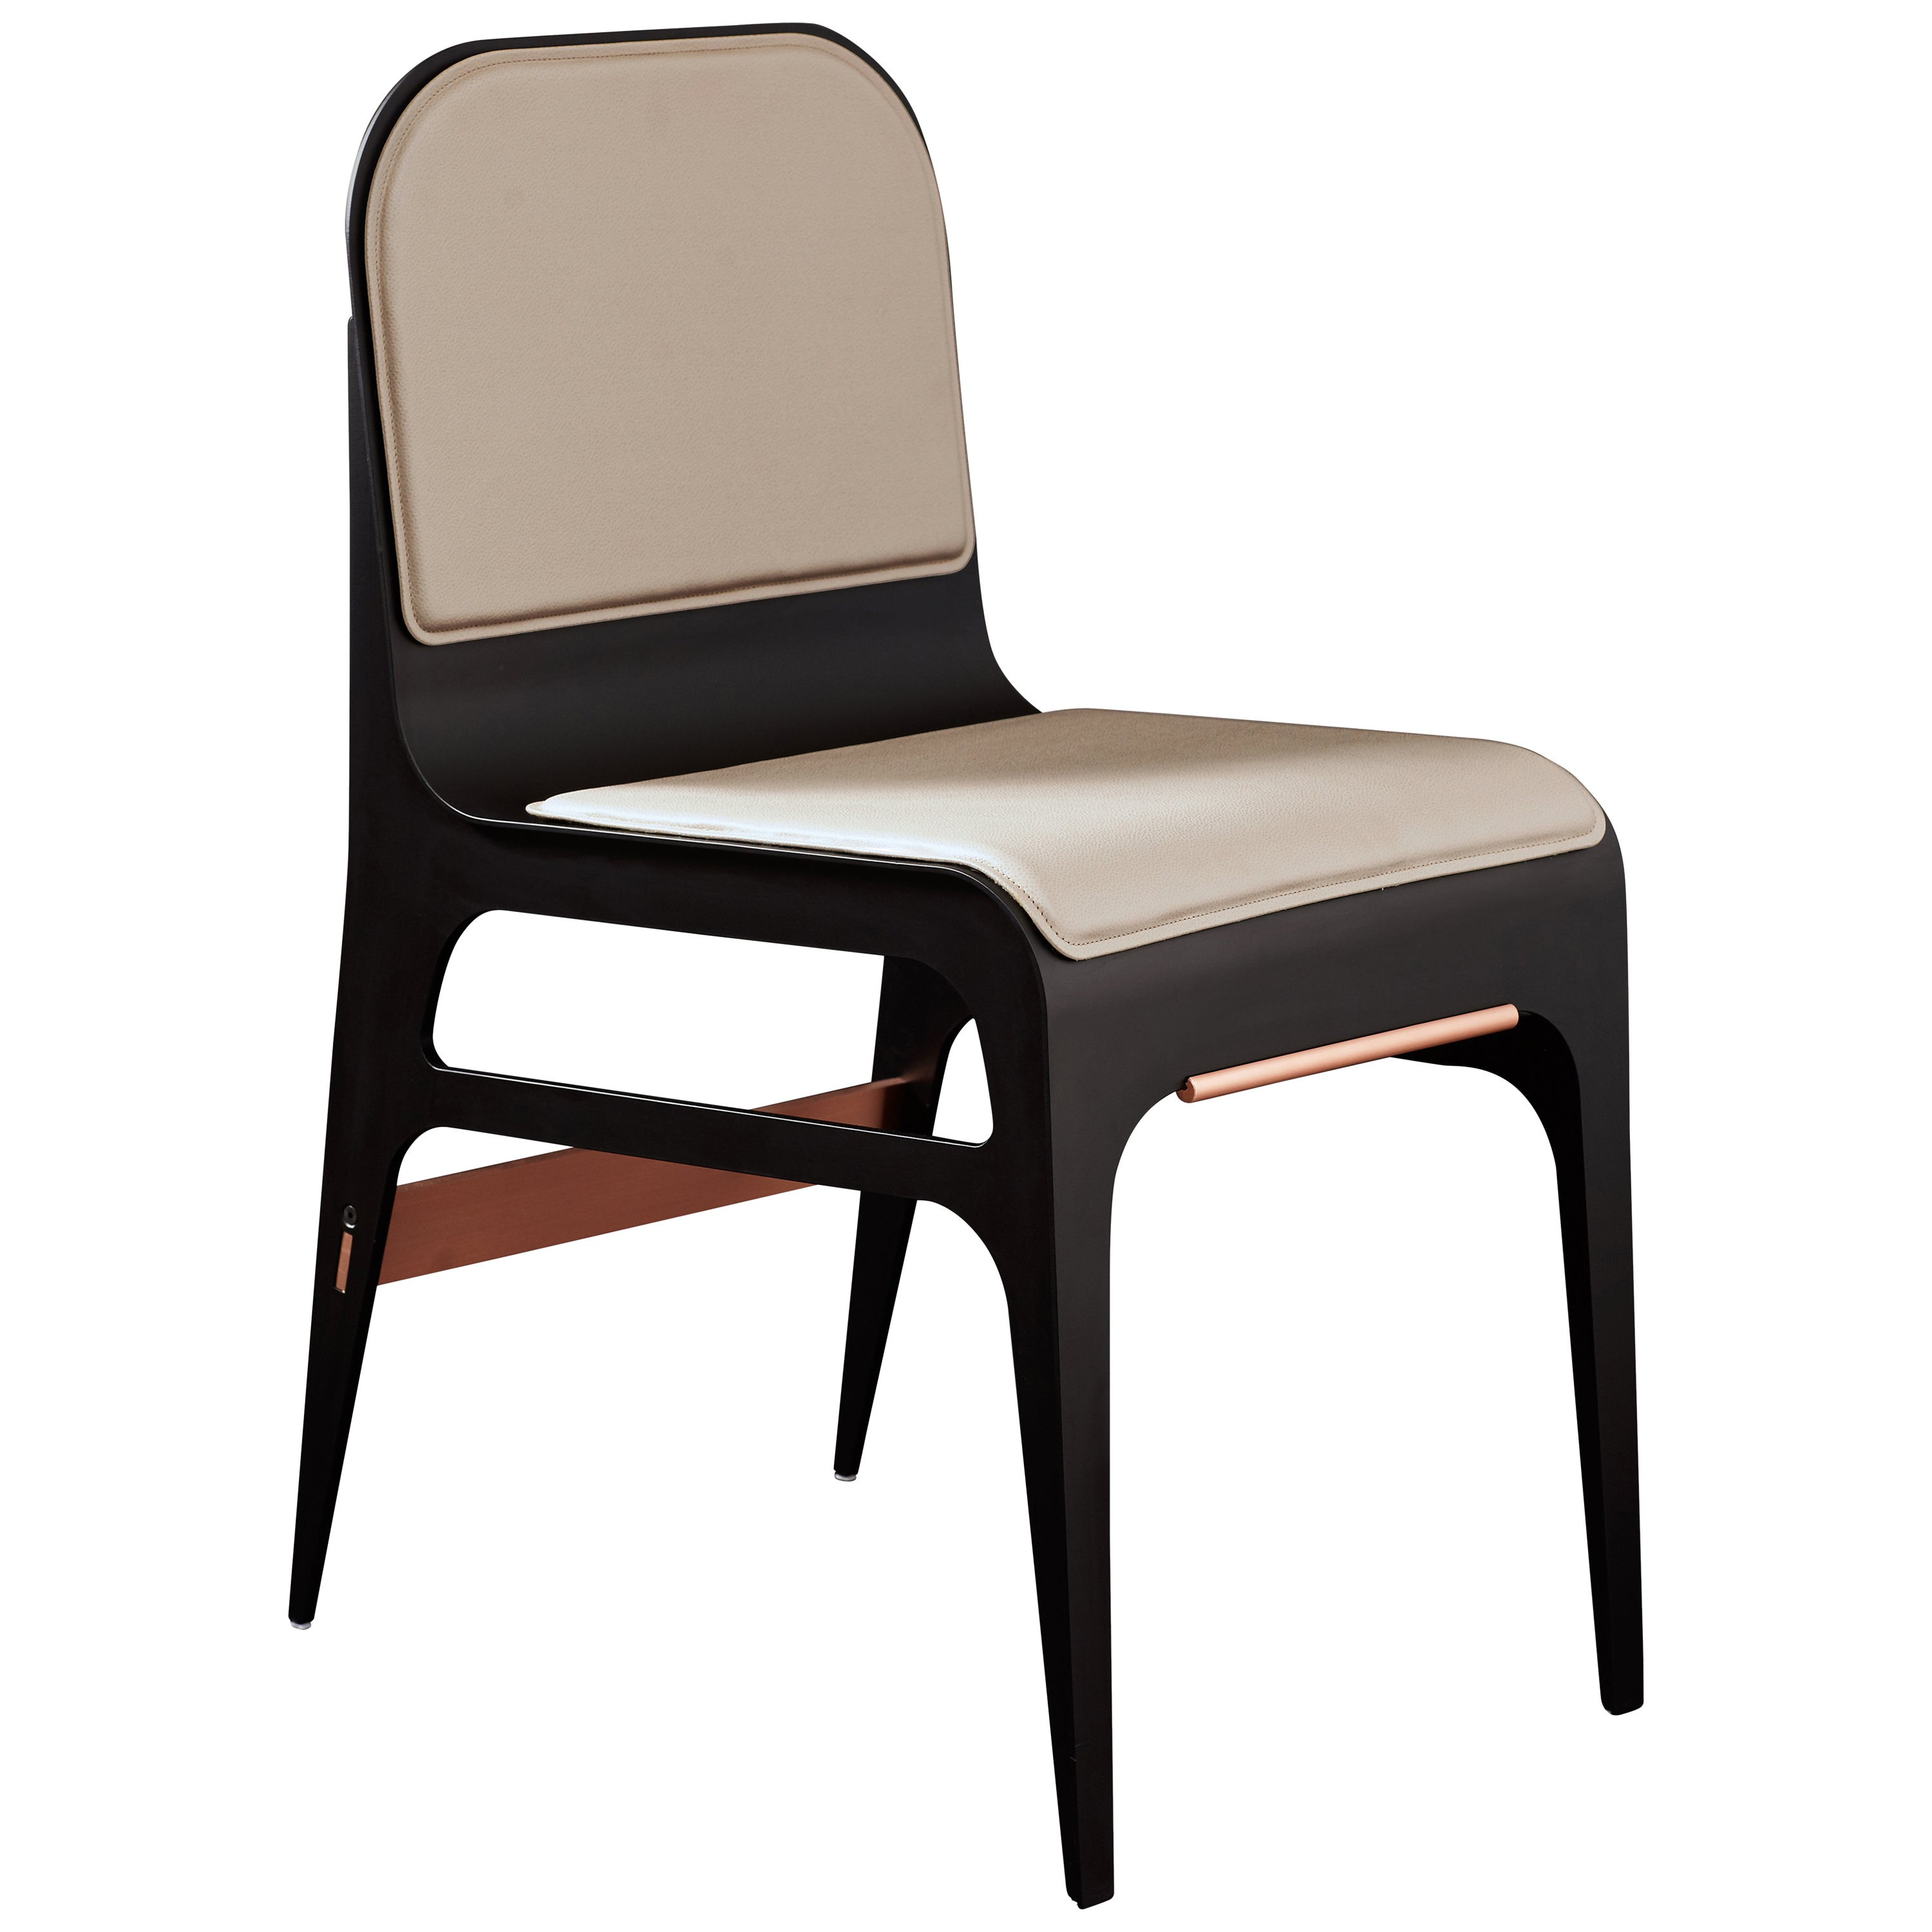 Bardot Dining Chair with Leather Seat and Satin Copper Hardware by Gabriel Scott